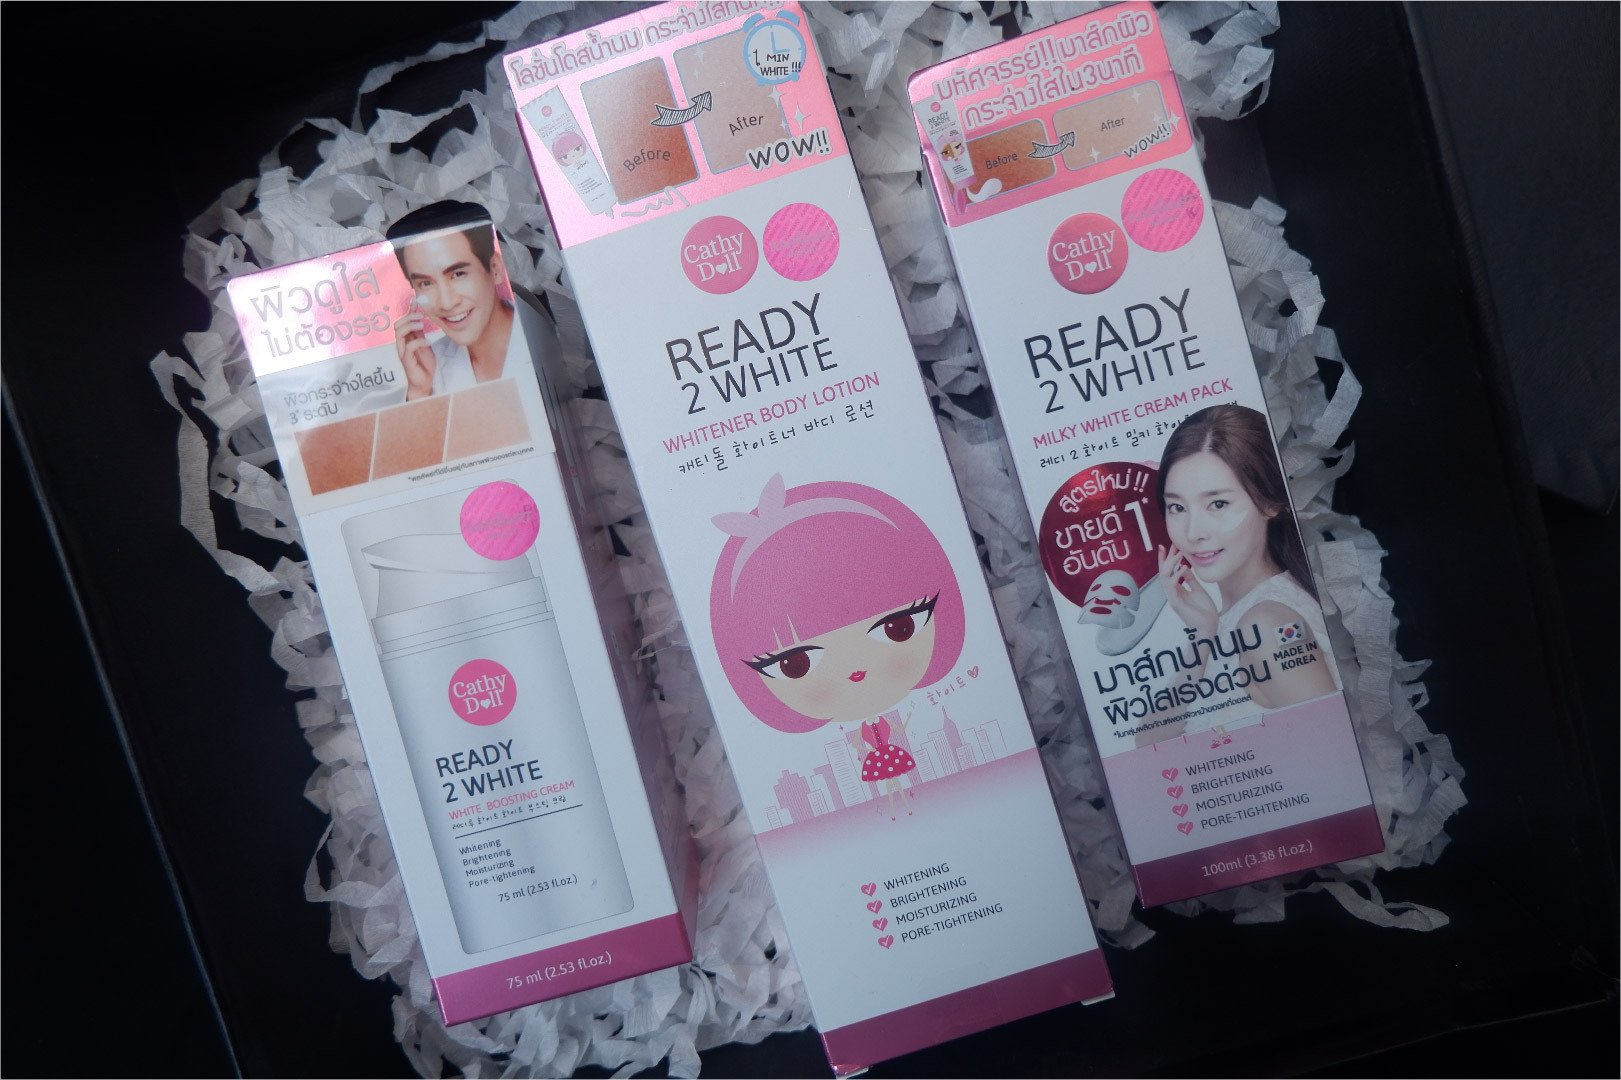 Review Cathy doll Ready 2 White Whitener Body Lotion, White Boosting Cream, Milky White Cream Pack